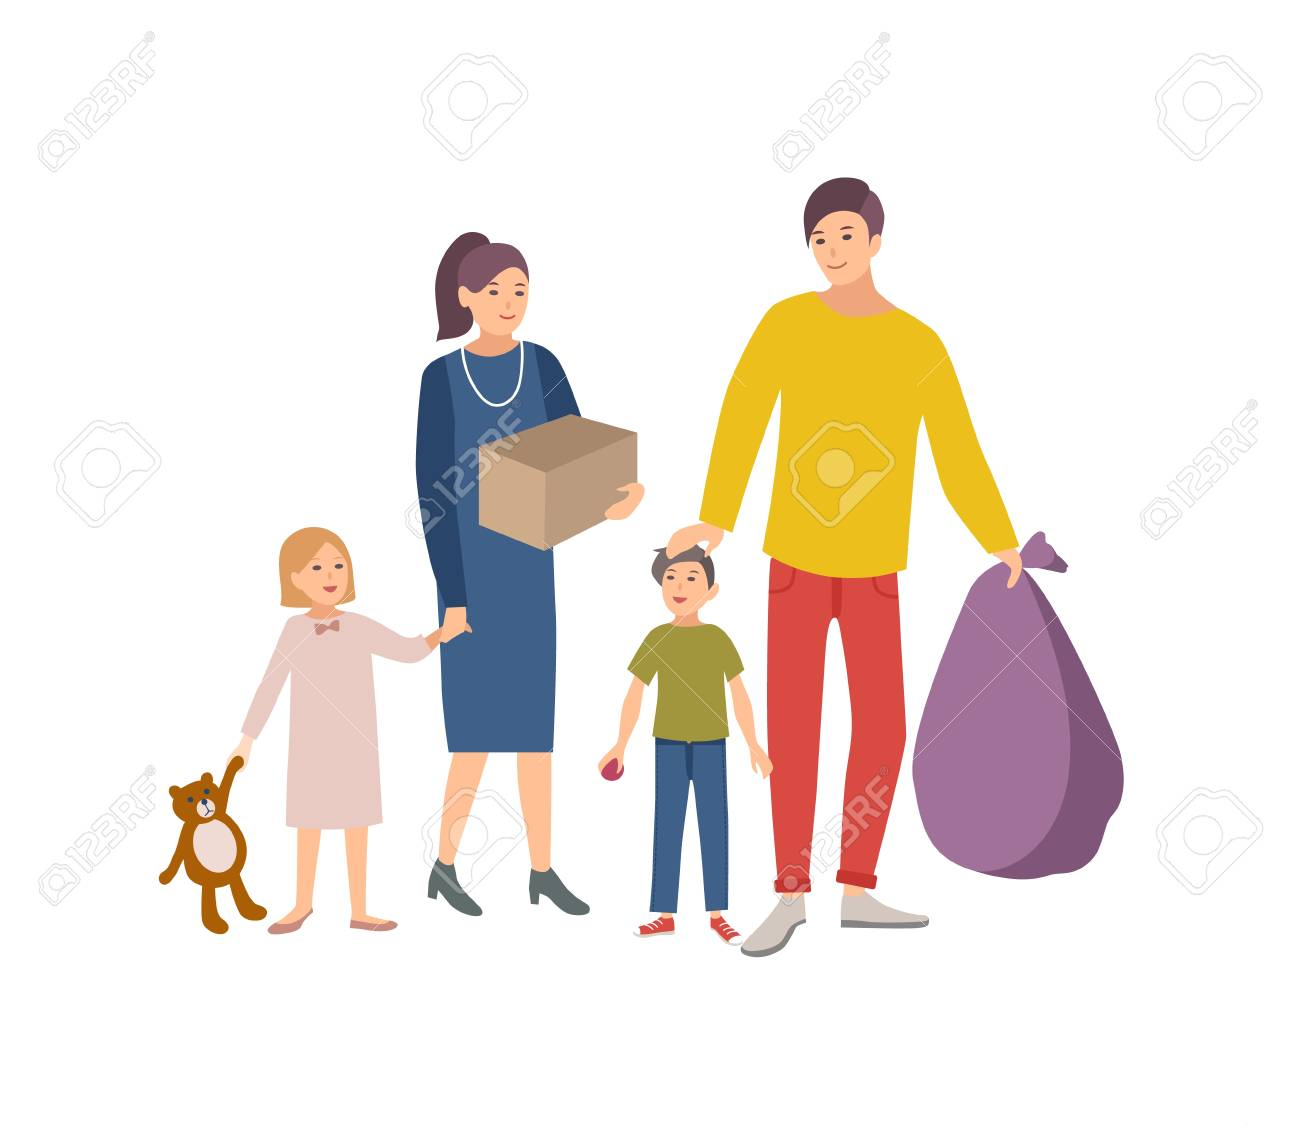 Man, woman and children carrying bag and box with old items and